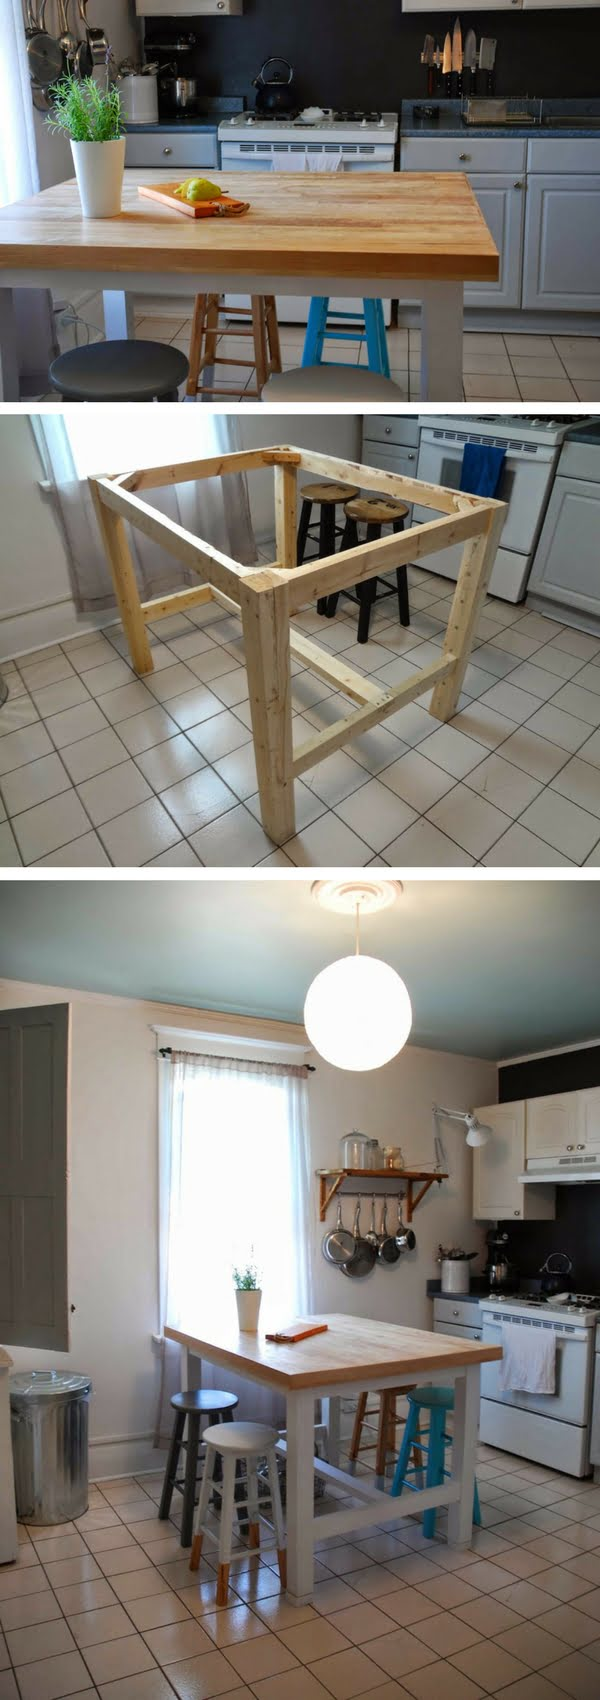 tabletop kitchen island